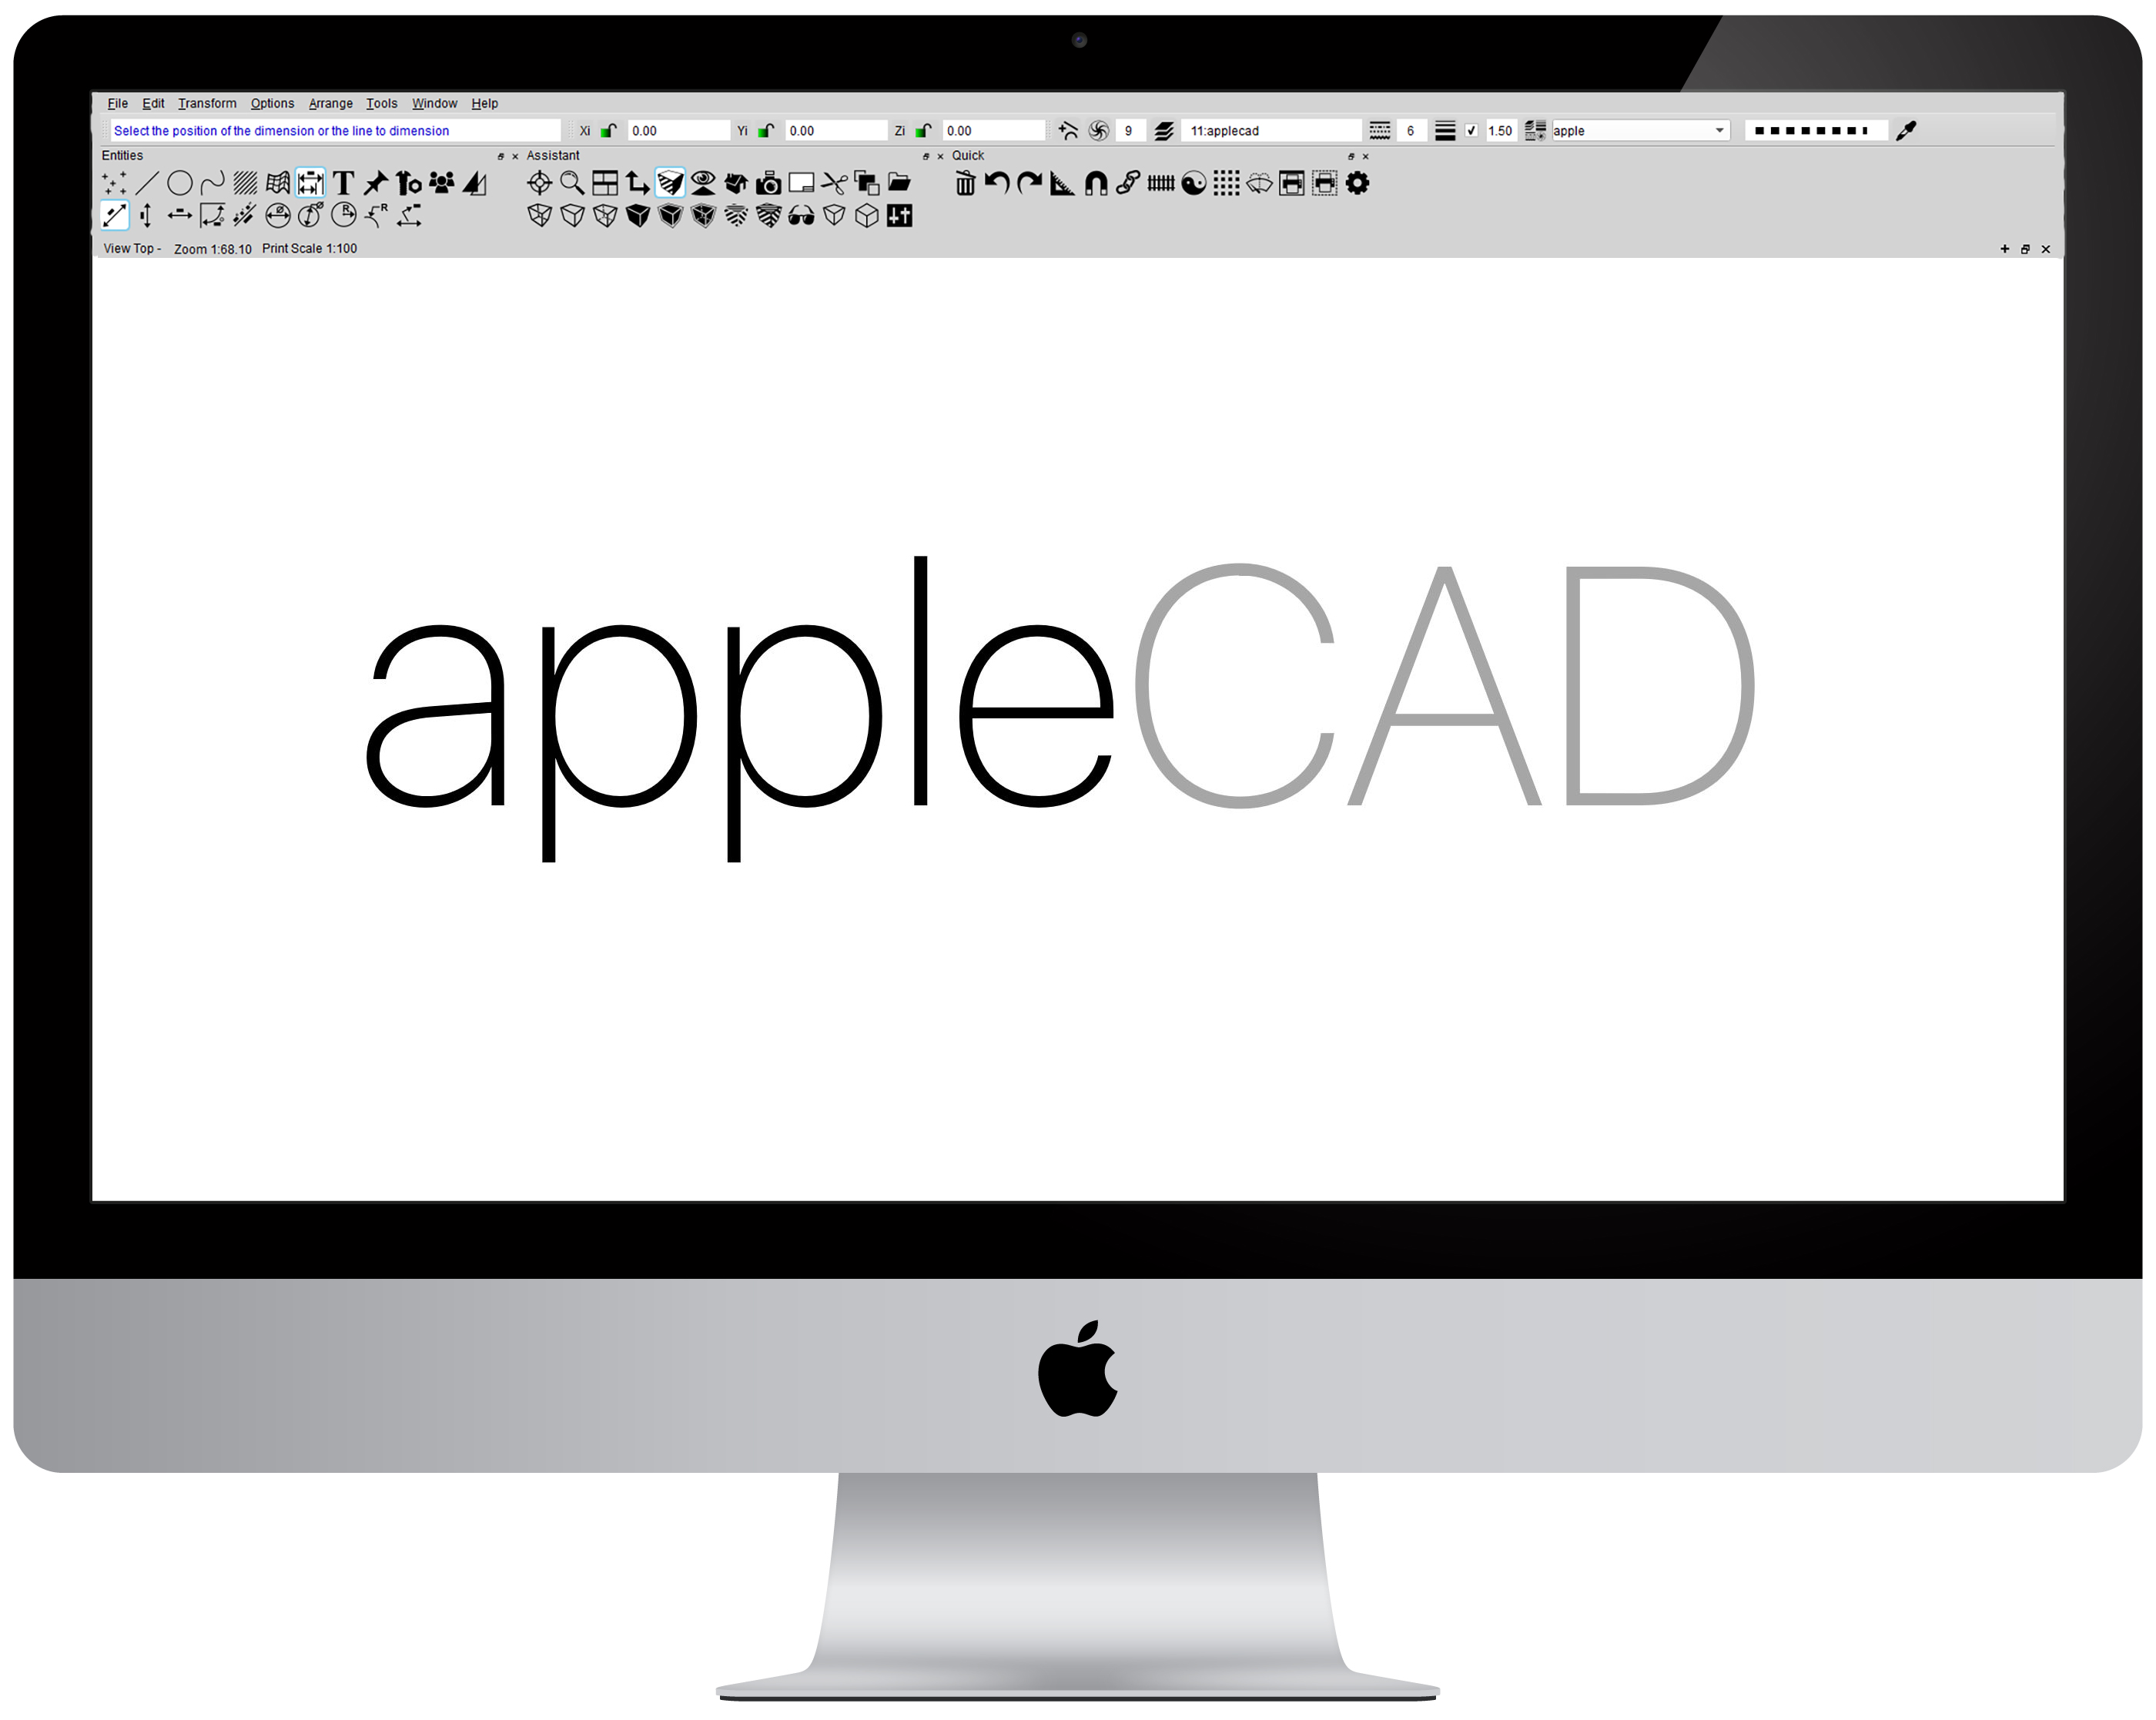 Applecad cad software for mac reviews and advice for Free cad programs for mac